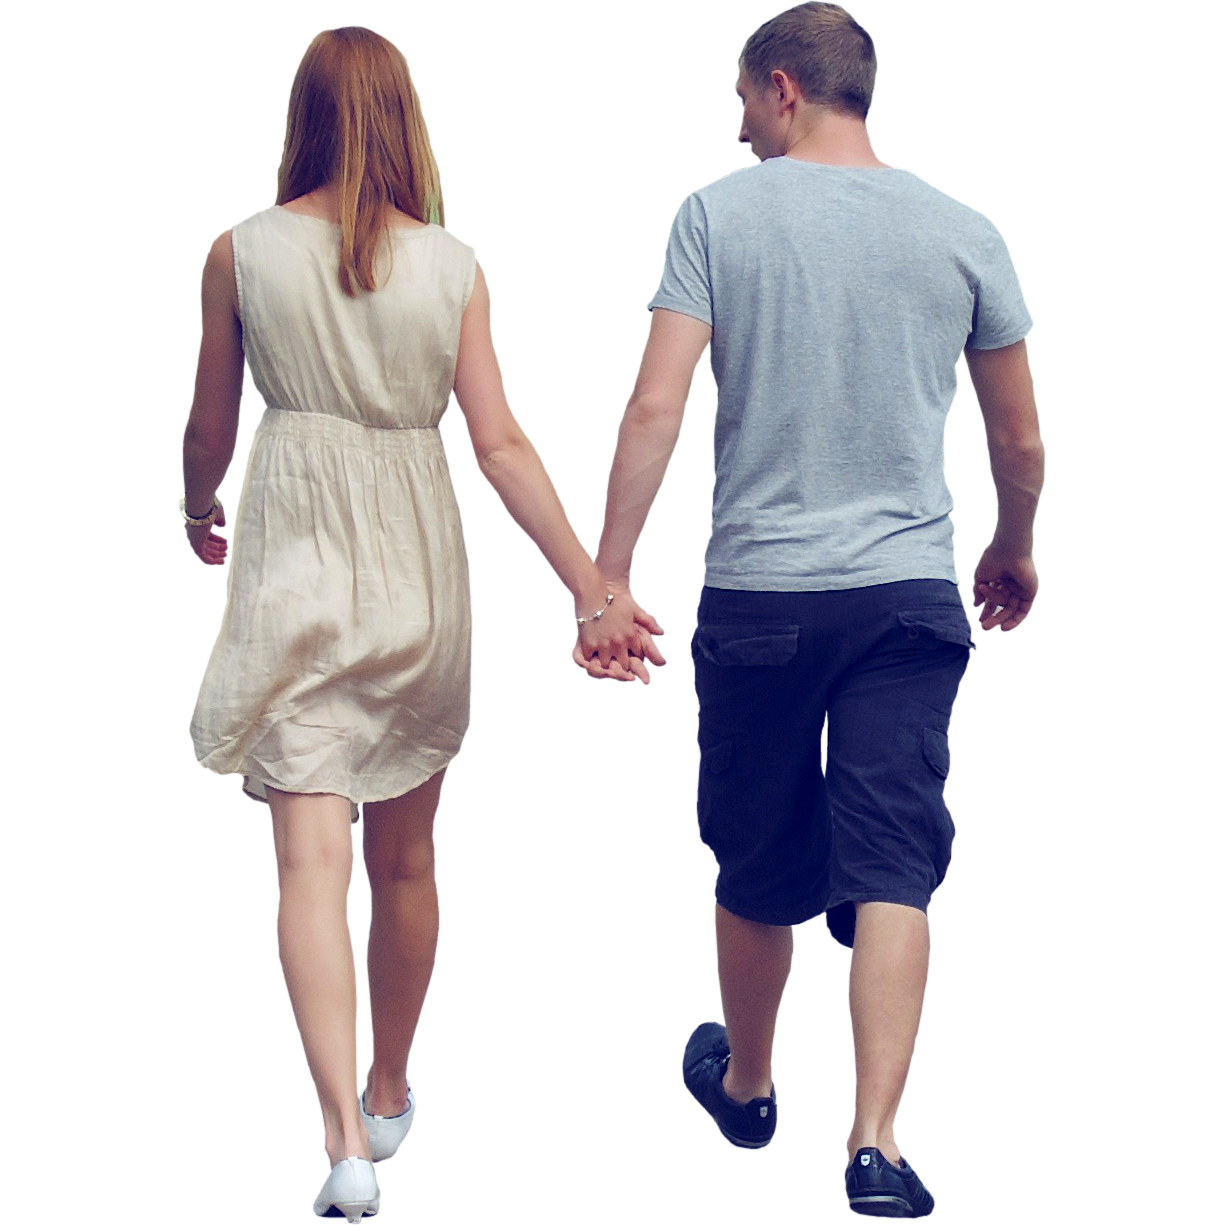 Couple People Png image #32507